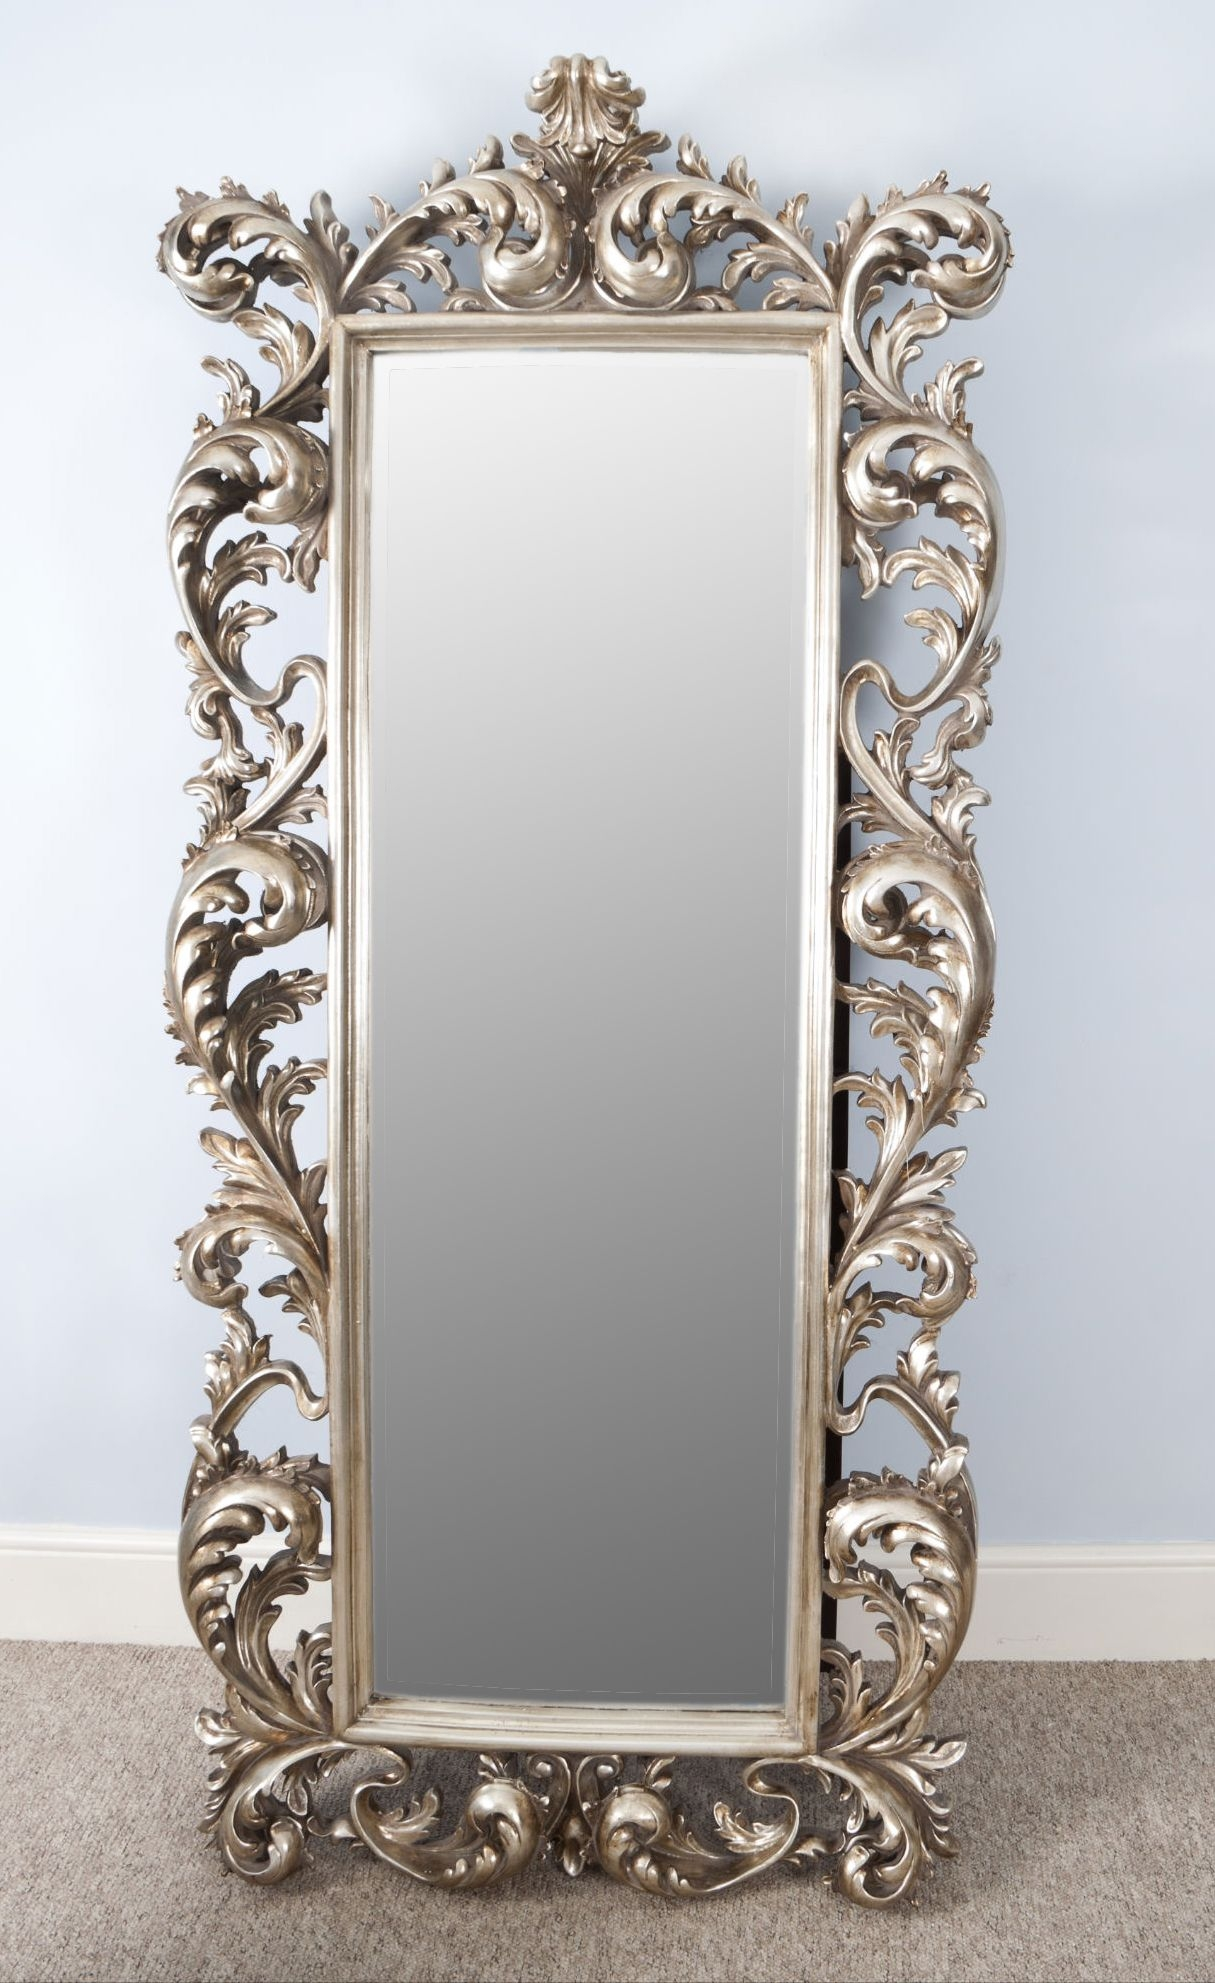 Classic Impression On Antique Wall Mirrors Vwho For Antique Wall Mirrors (Image 10 of 15)